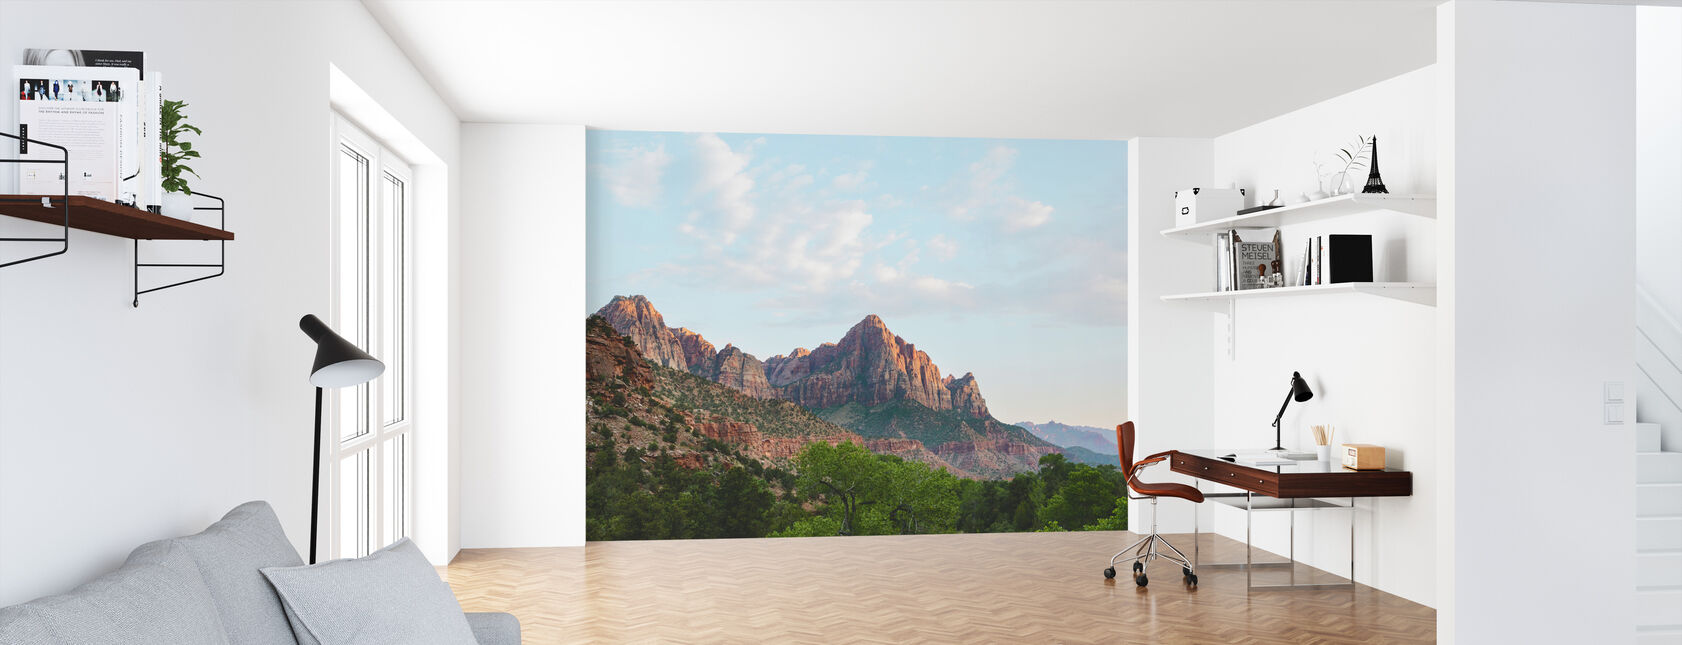 Zion National Park, Utah, USA - Wallpaper - Office